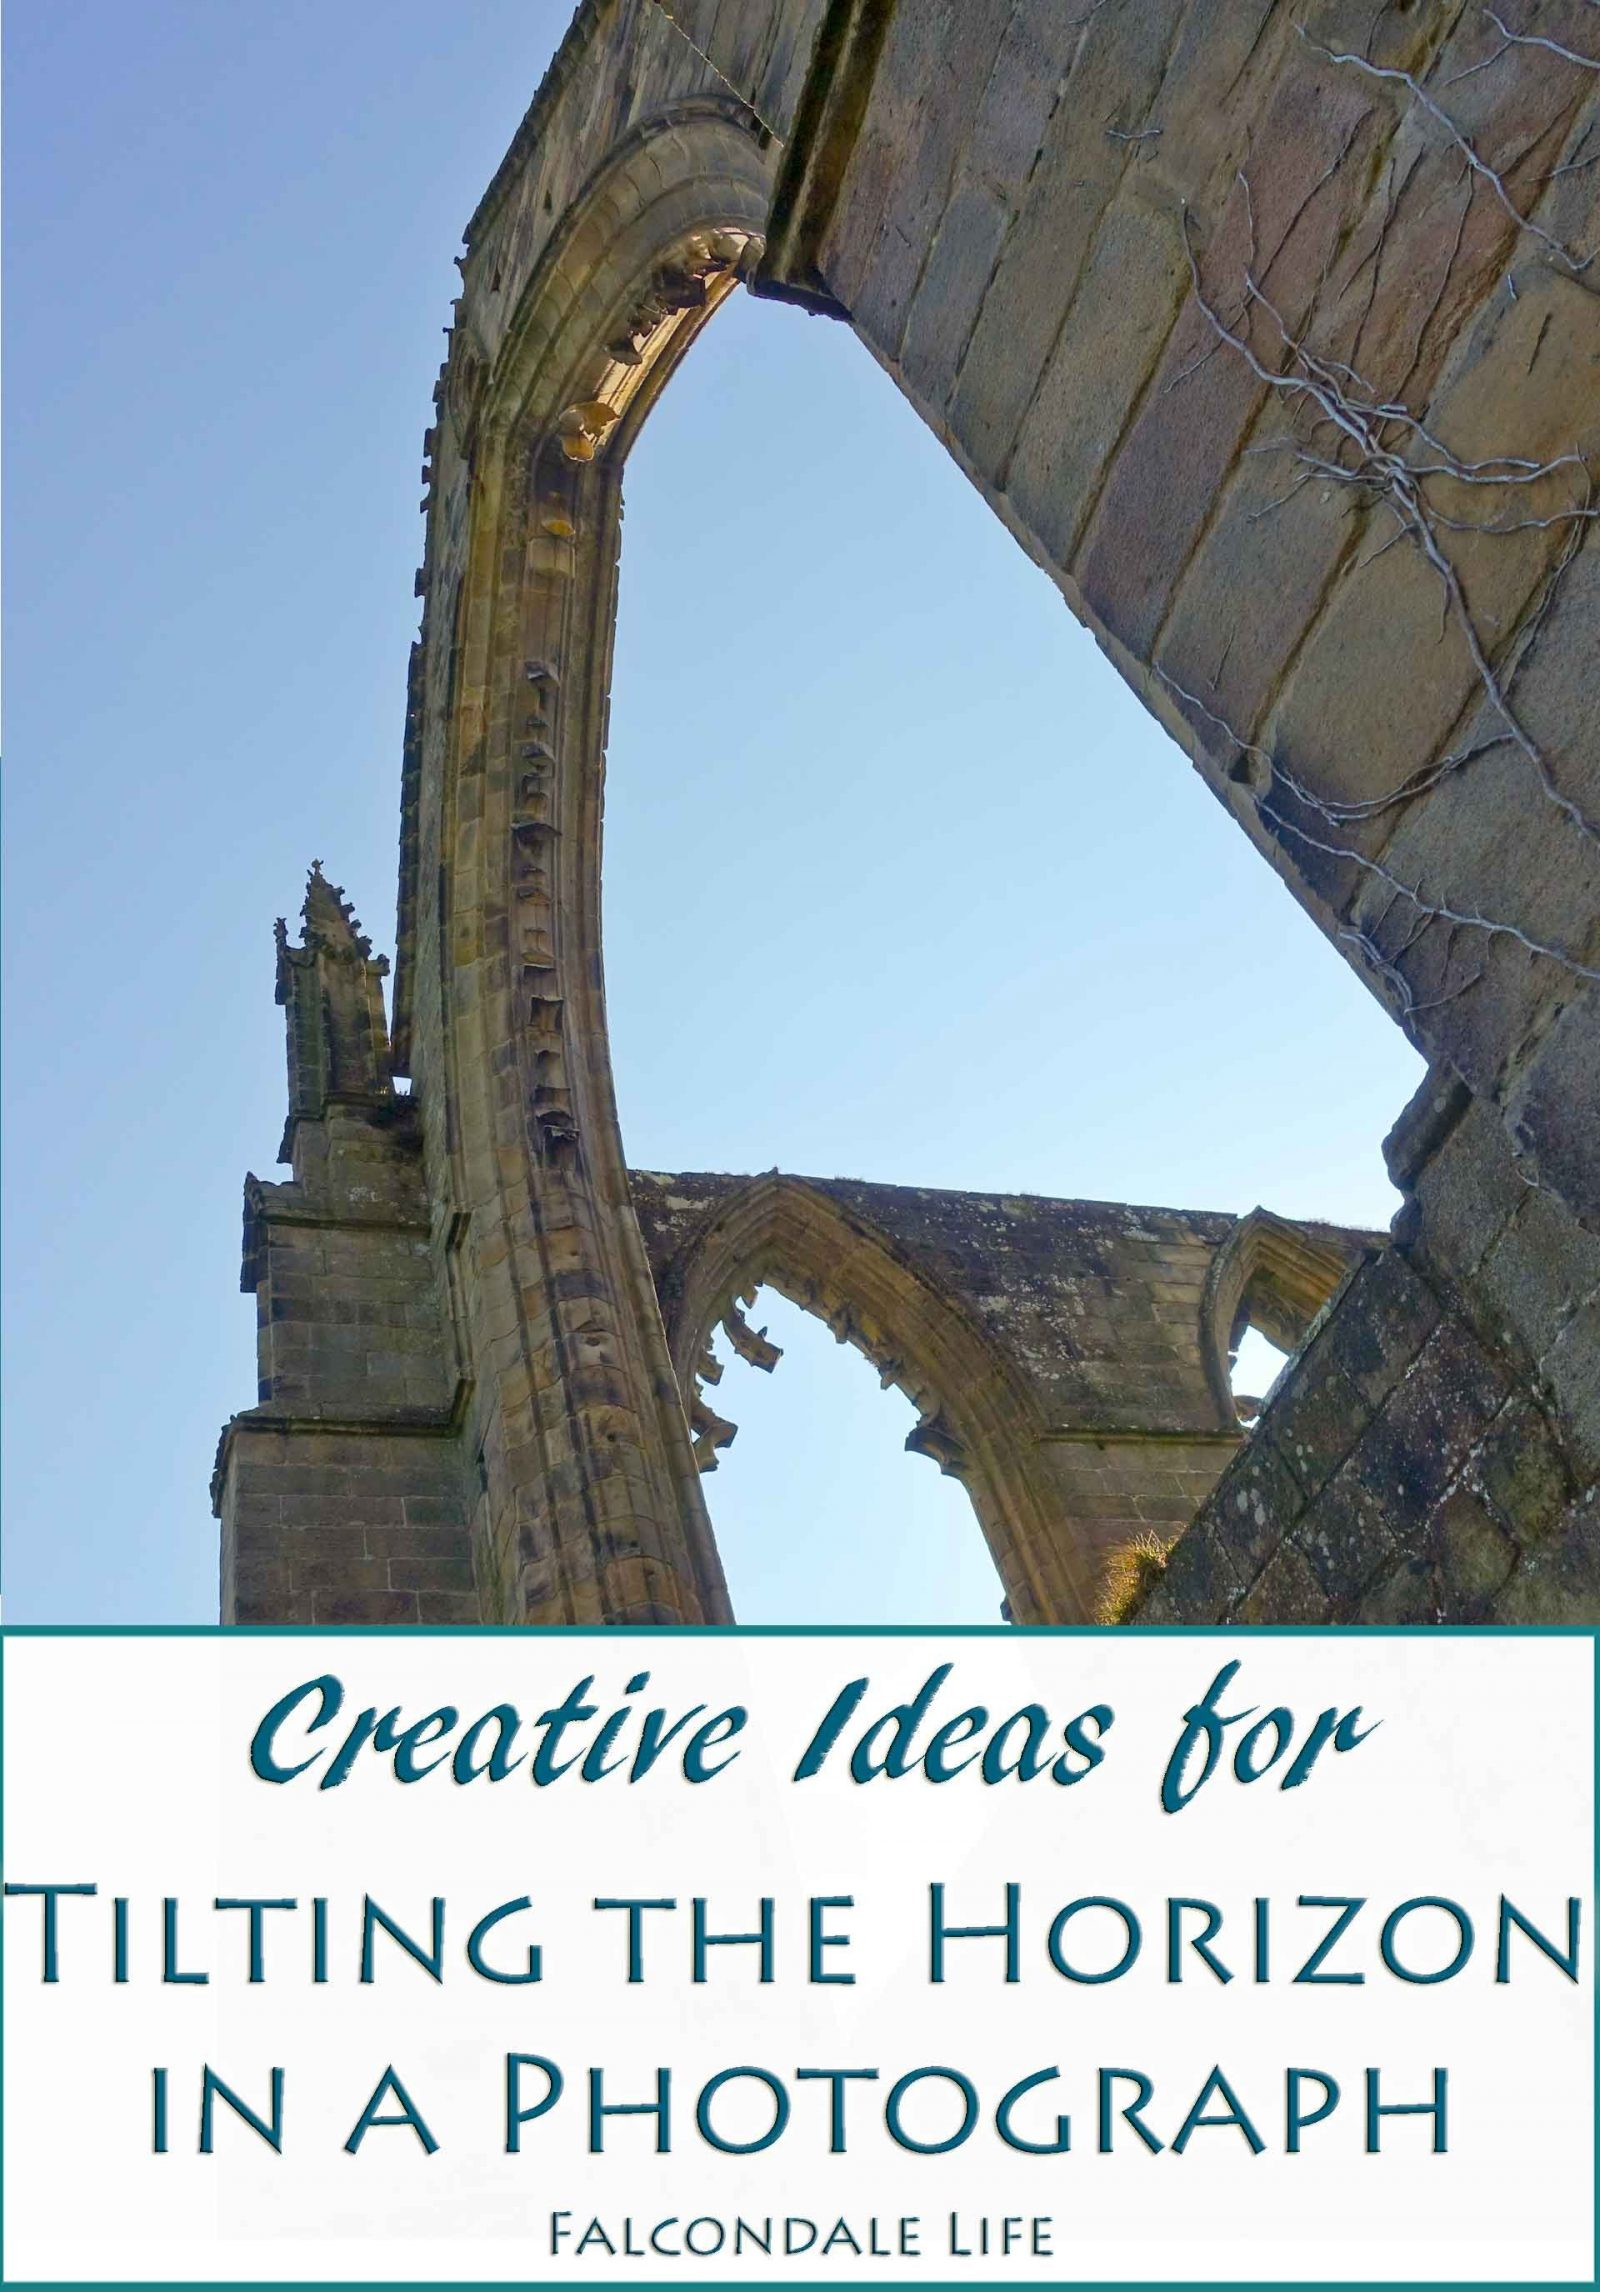 Creative Ideas for Tilting the Horizon in a Photograph on Falcondale Life Blog. Sometimes our horizons are wonky by accident but what if you deliberately tilt your image to get an interesting new effect? Bolton Abbey.